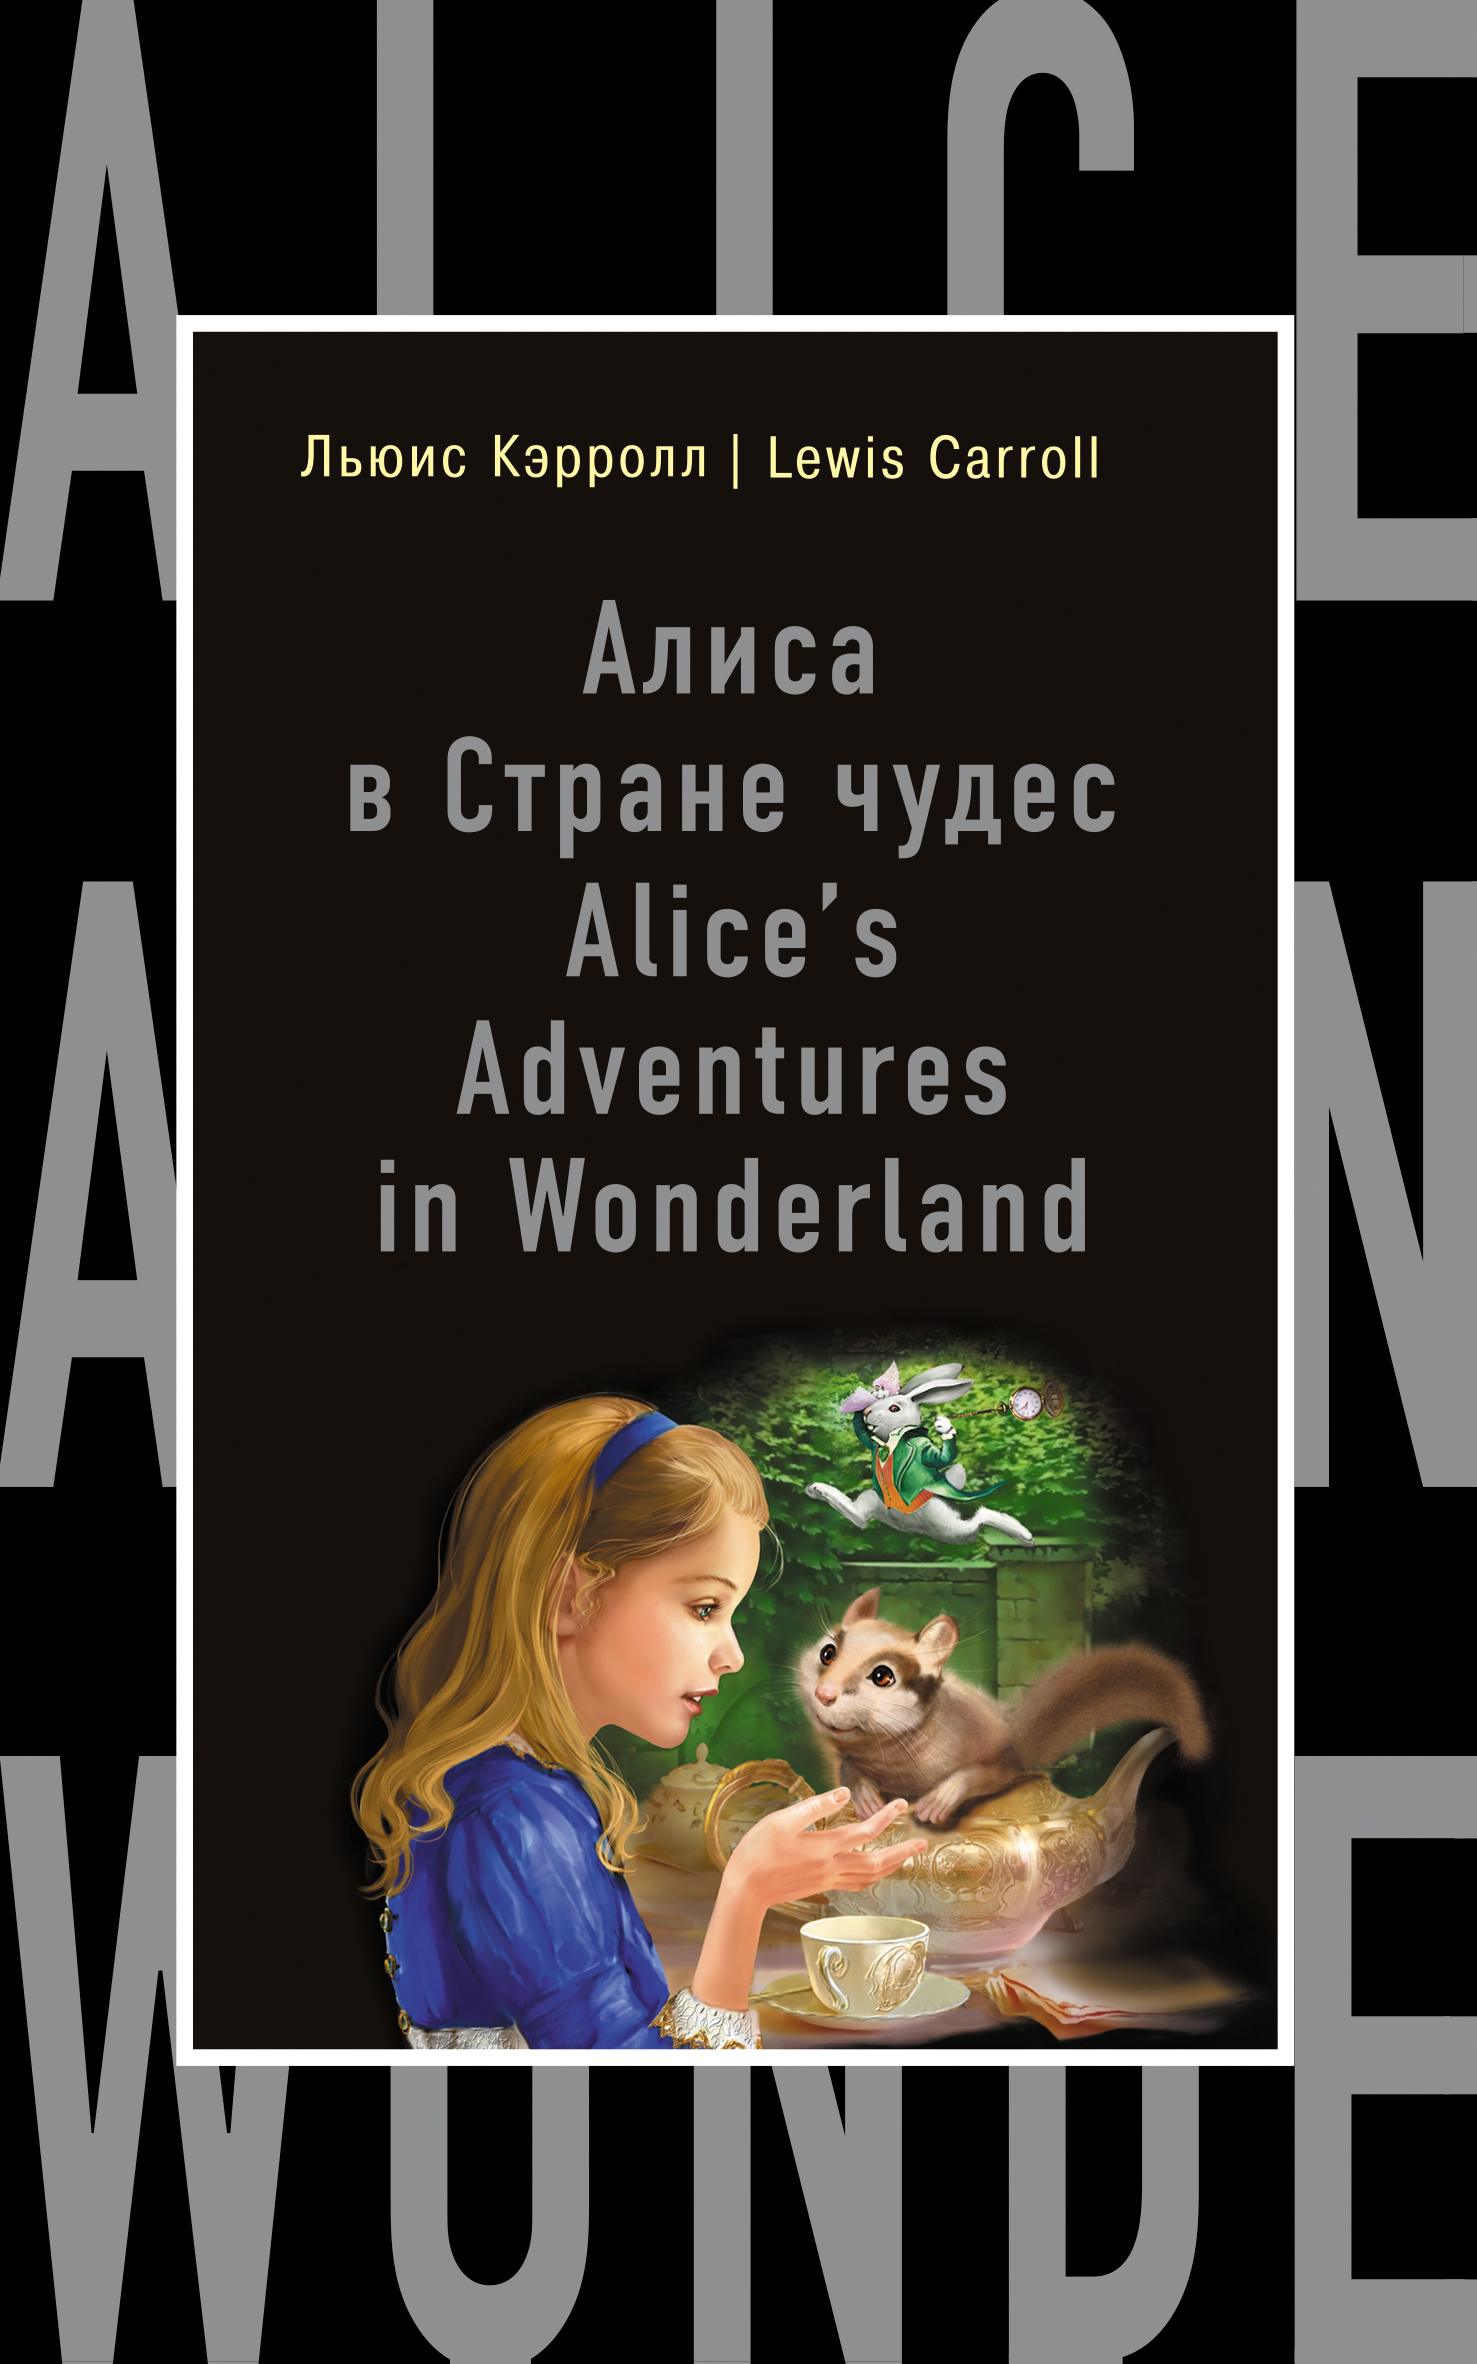 Кэрролл Льюис Алиса в Стране чудес = Alice's Adventures in Wonderland - страница 0